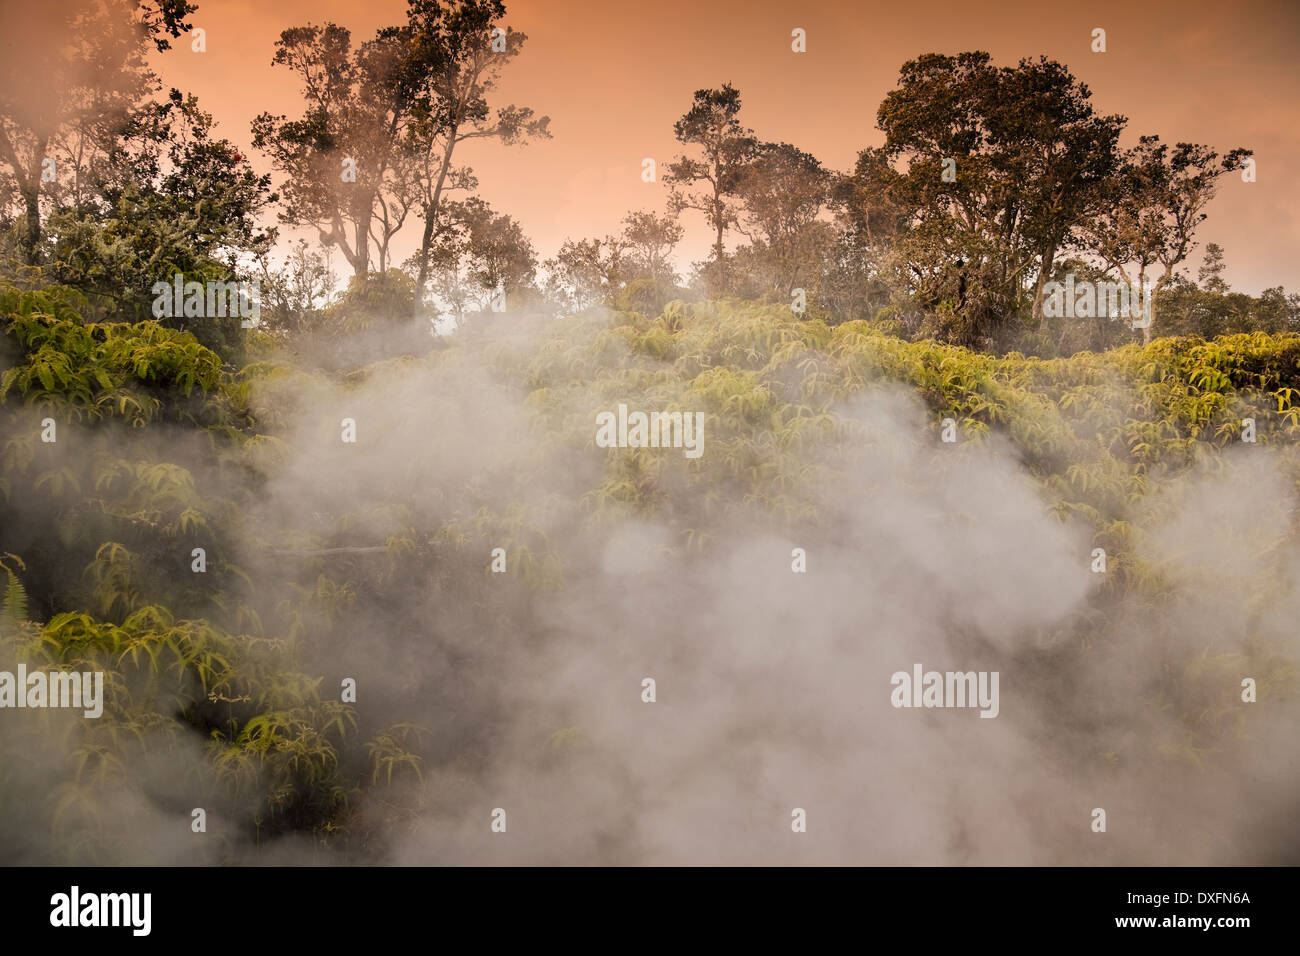 Steam vents amidst ohia and ferns in Volcanoes National Park, Hawaii. - Stock Image